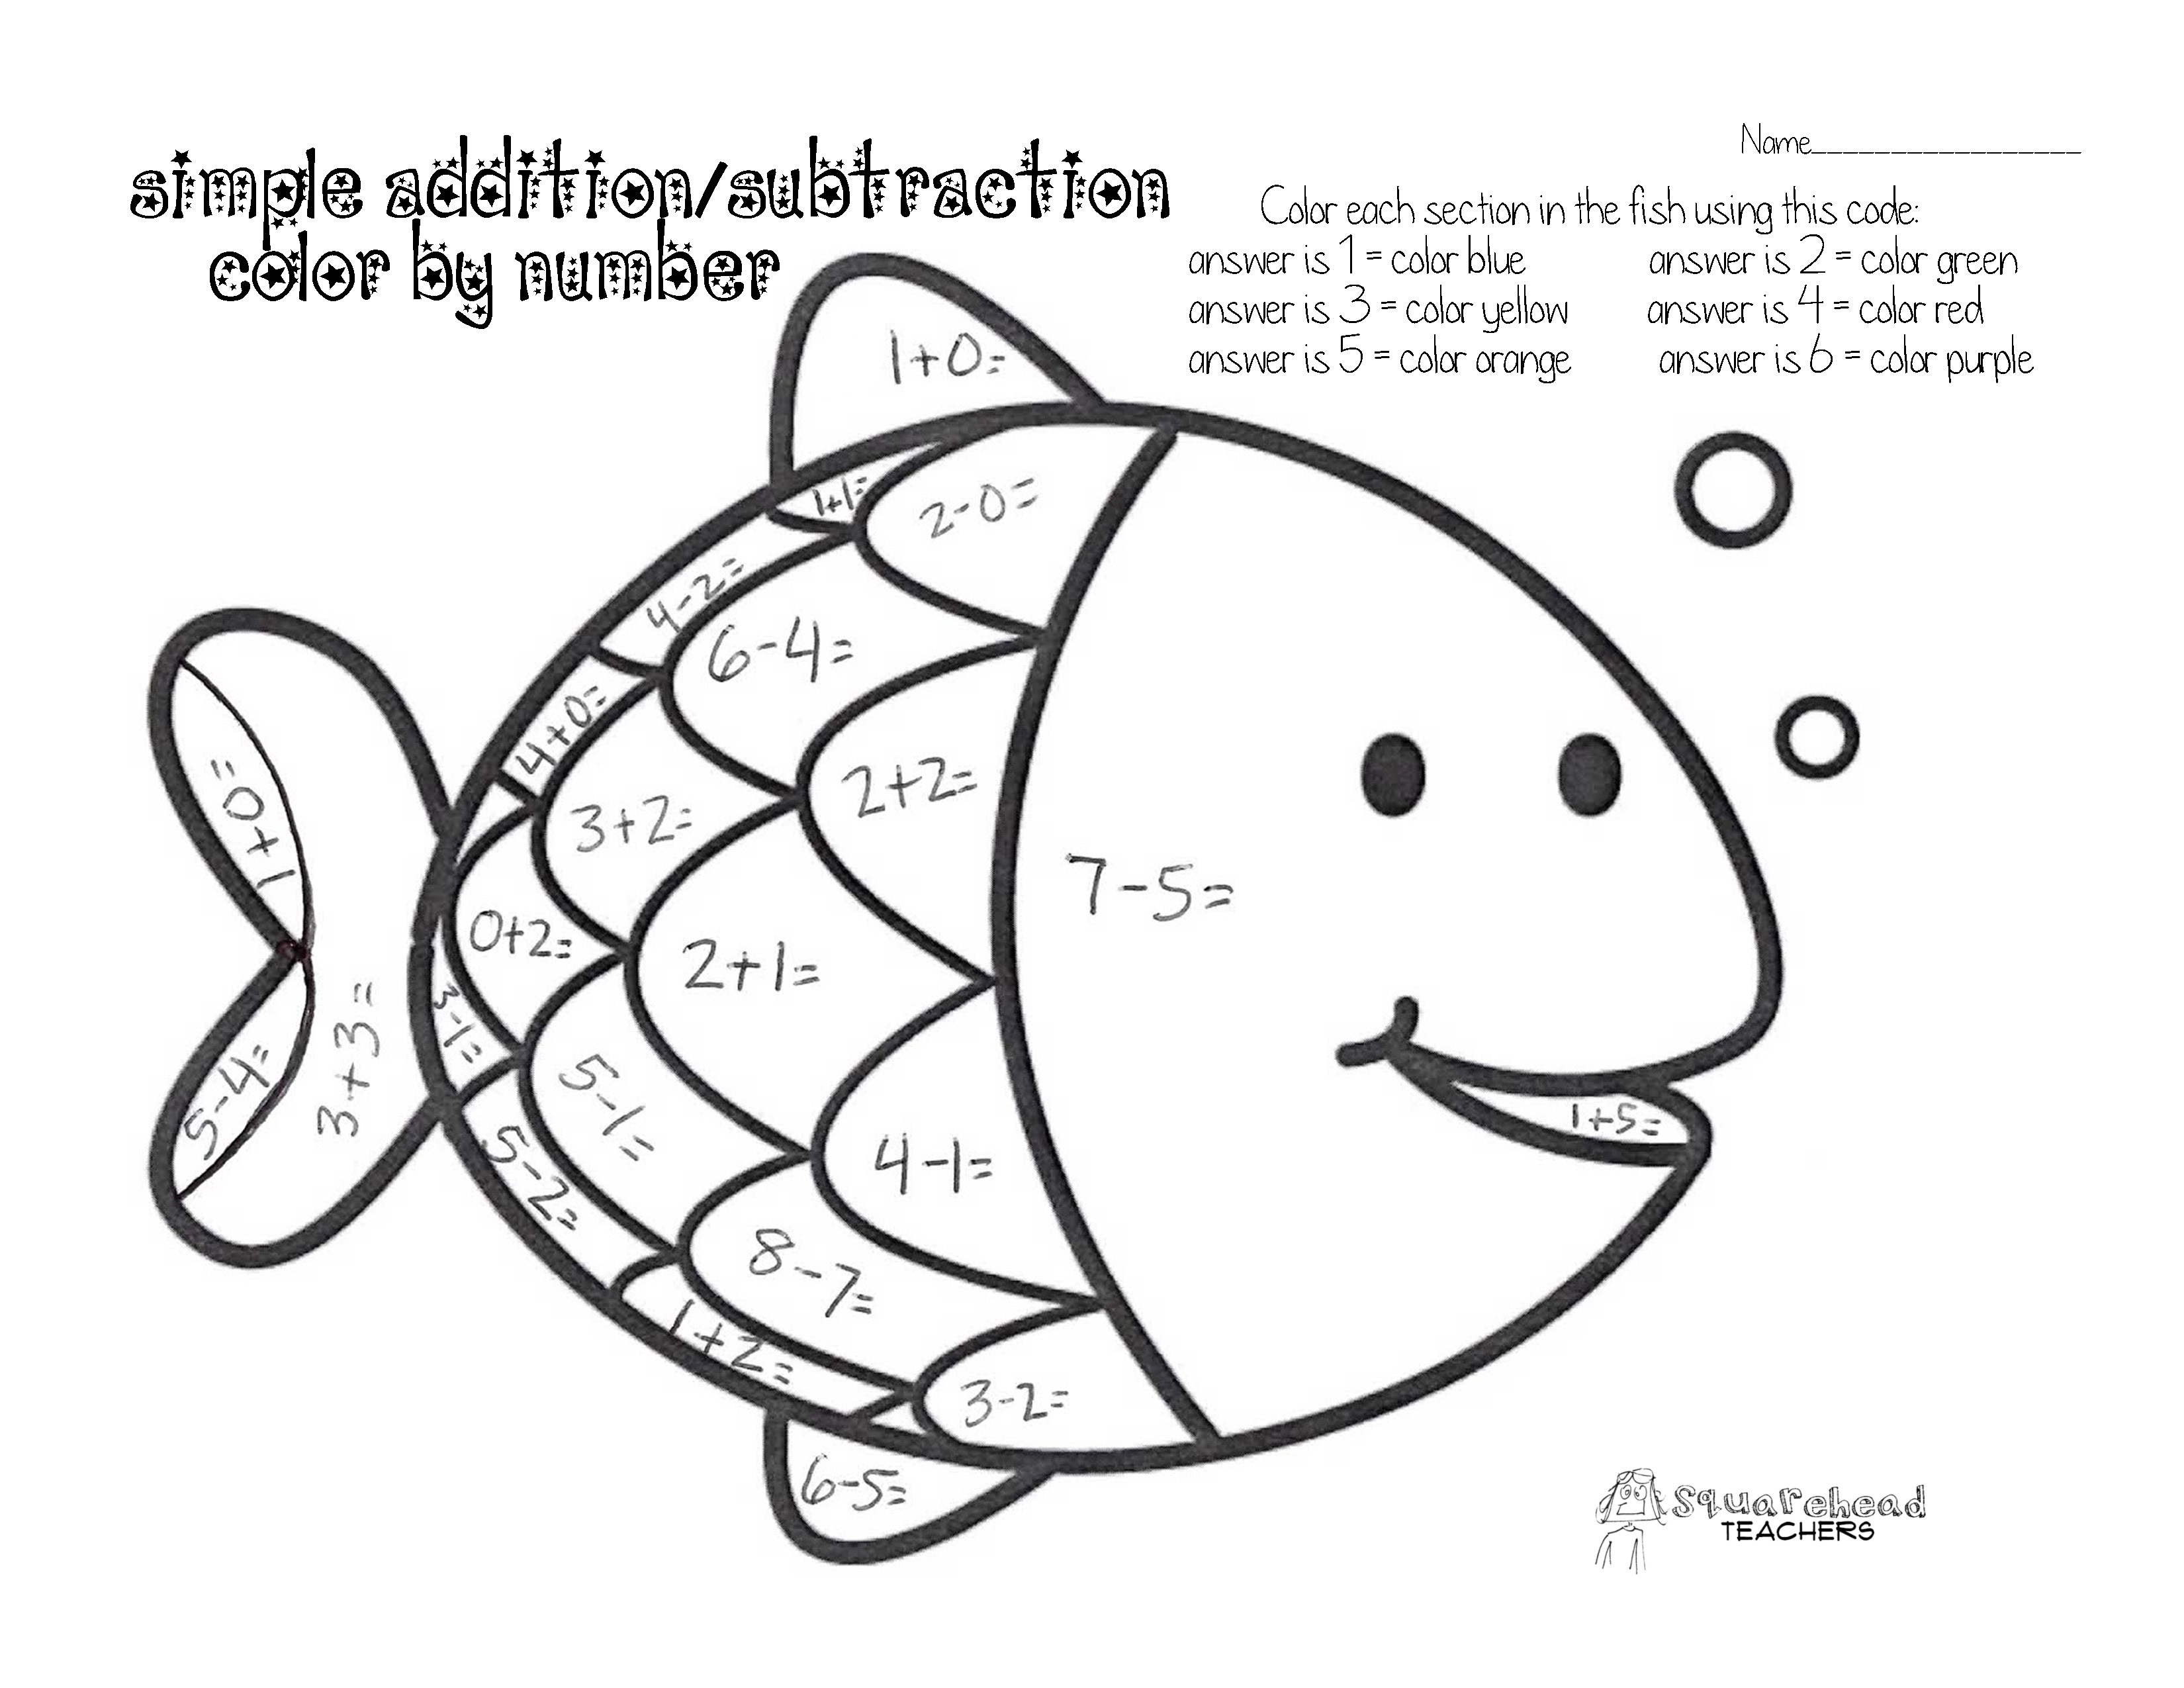 3rd grade coloring pages photo - 1